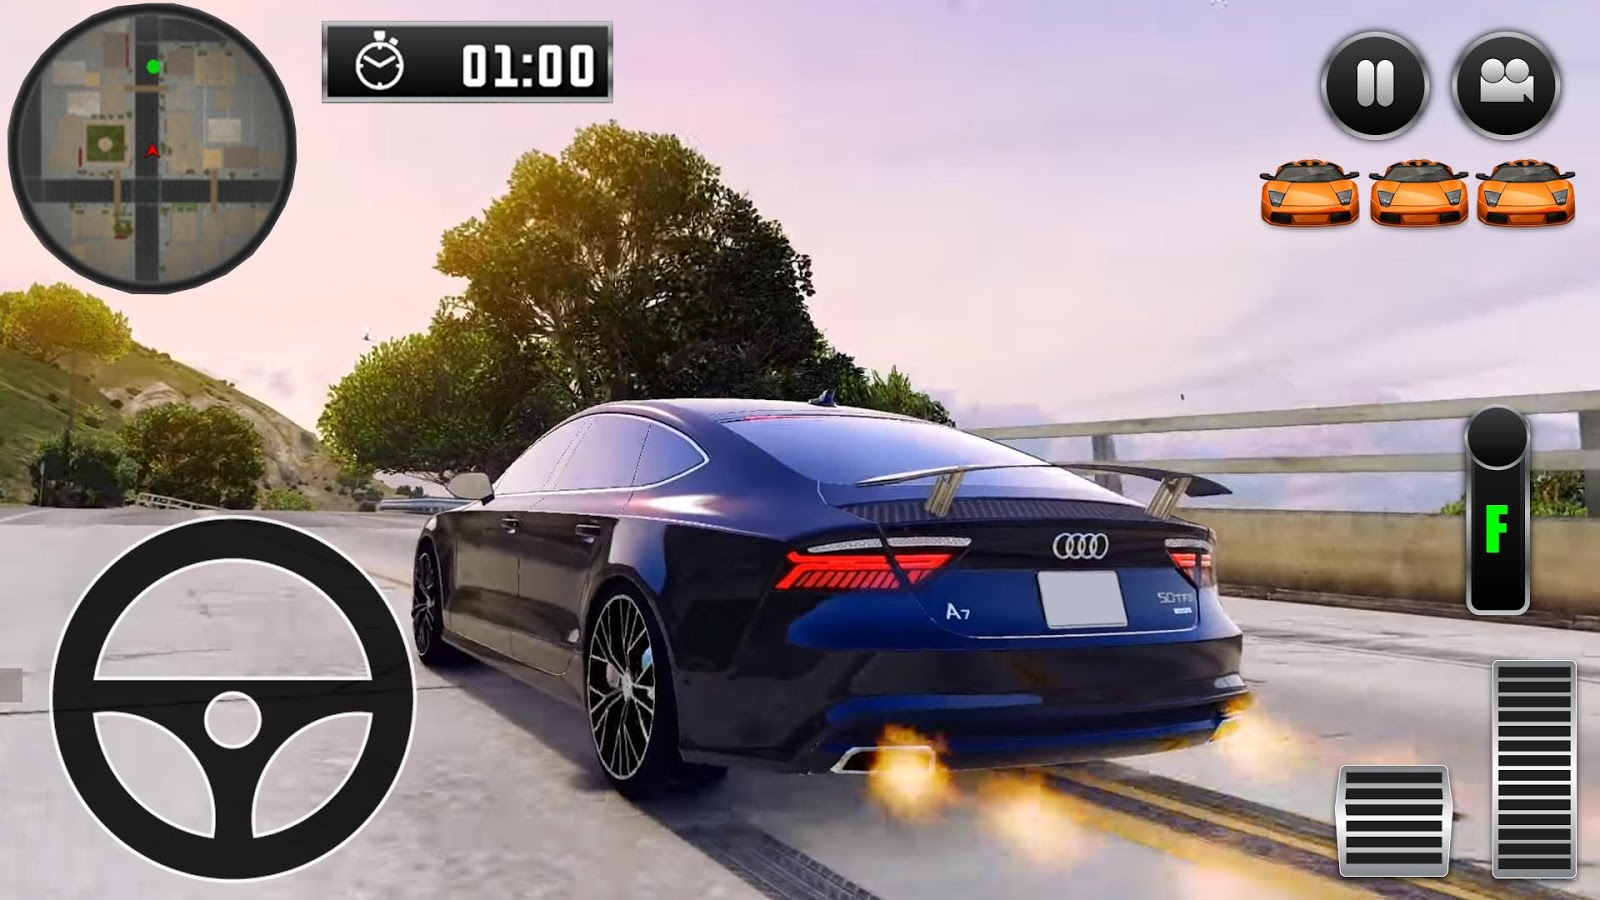 City driving audi car simulator android apps on google play for Car paint simulator